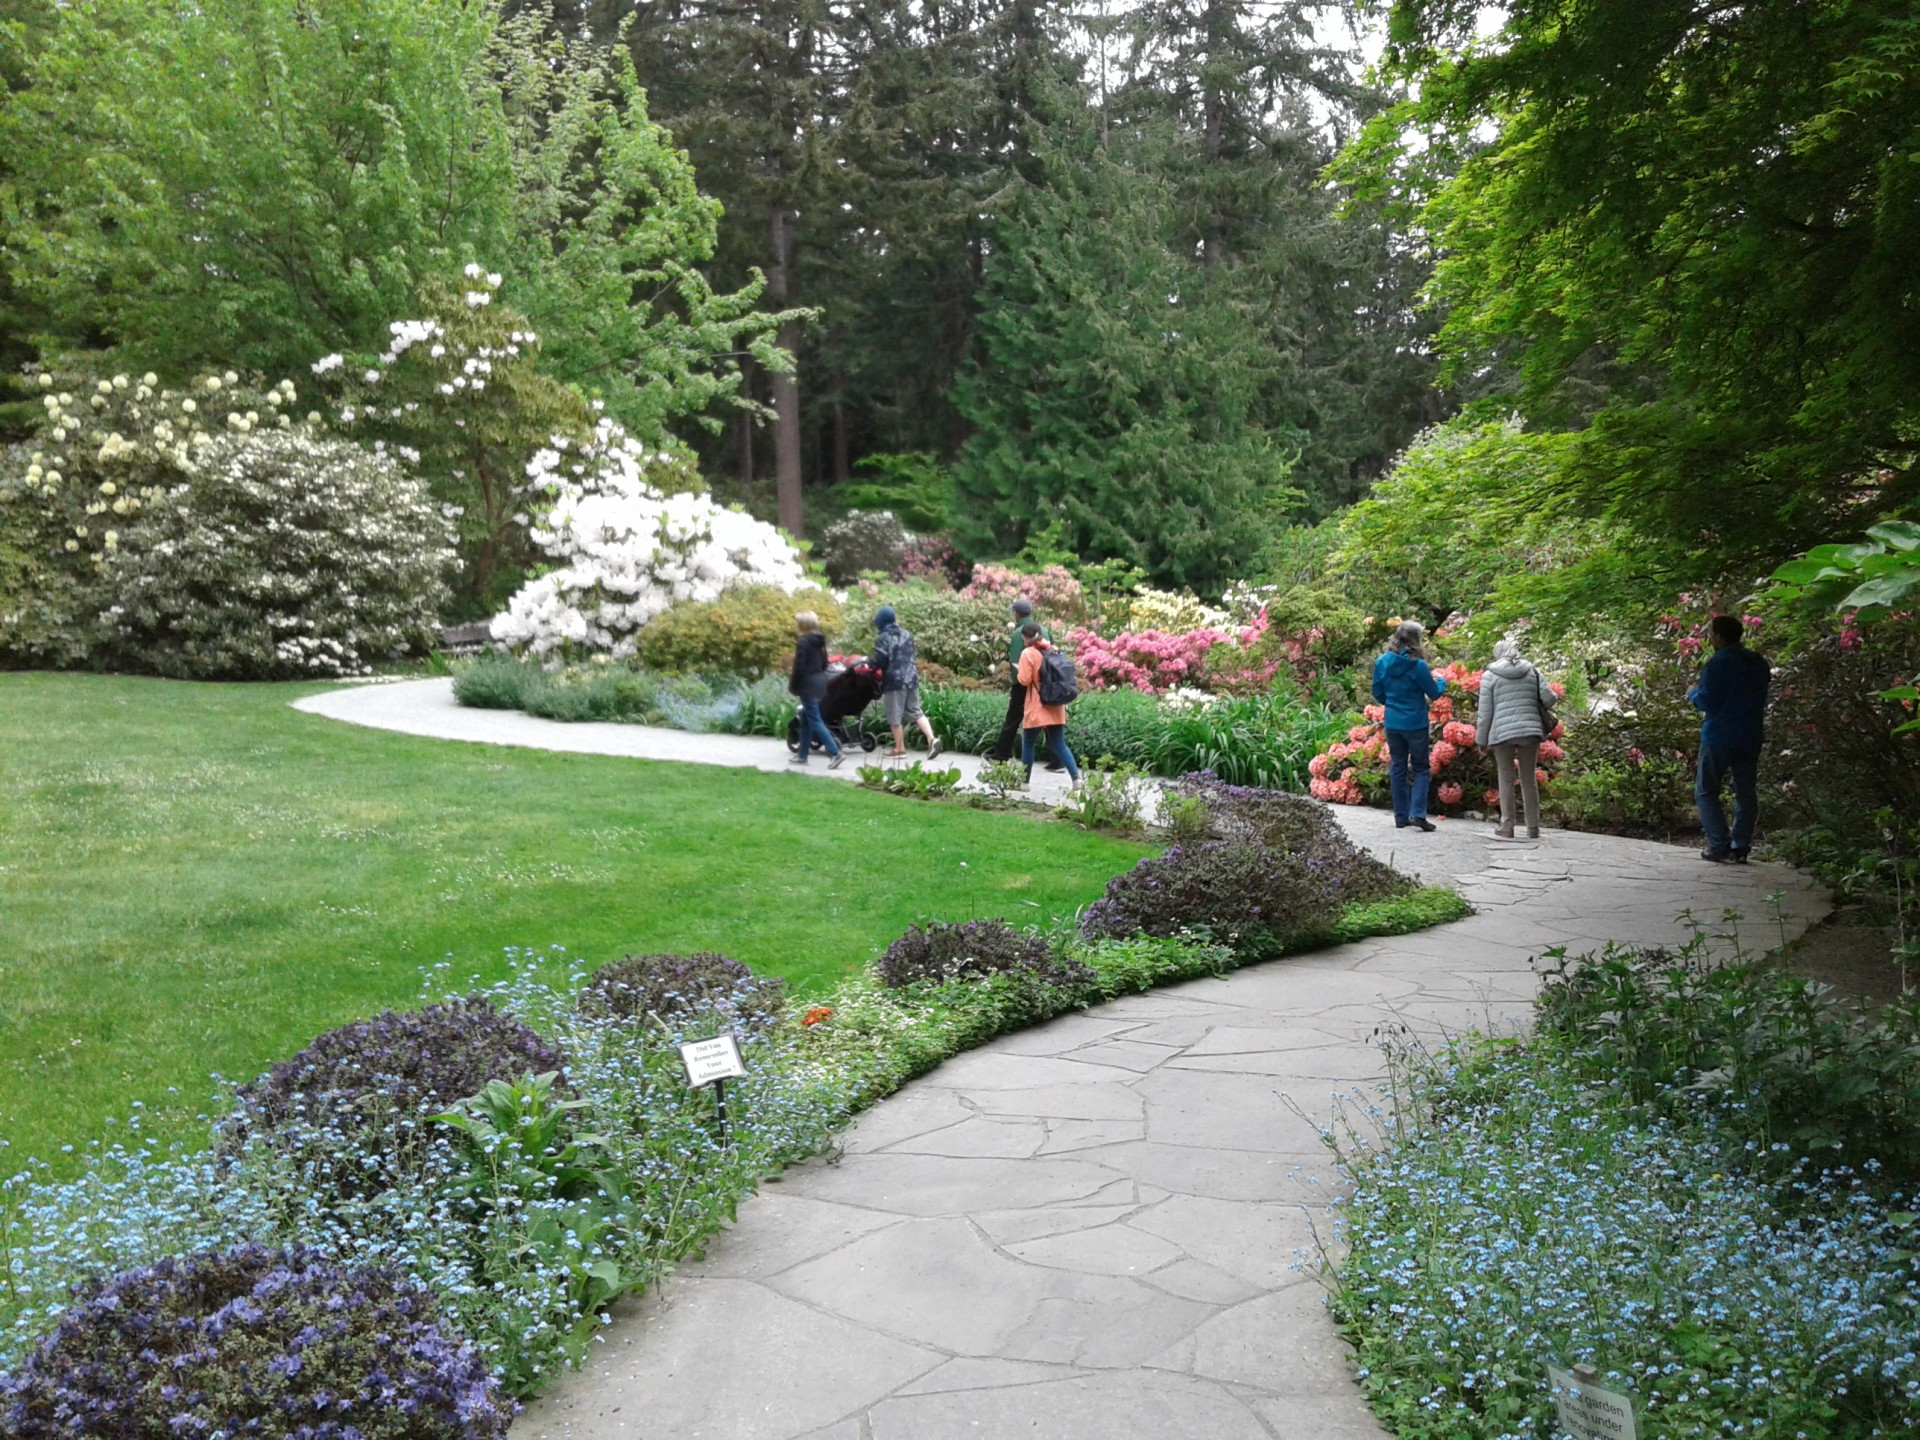 Scenic WA| Best Places to Visit in Washington State | Meerkerk Gardens